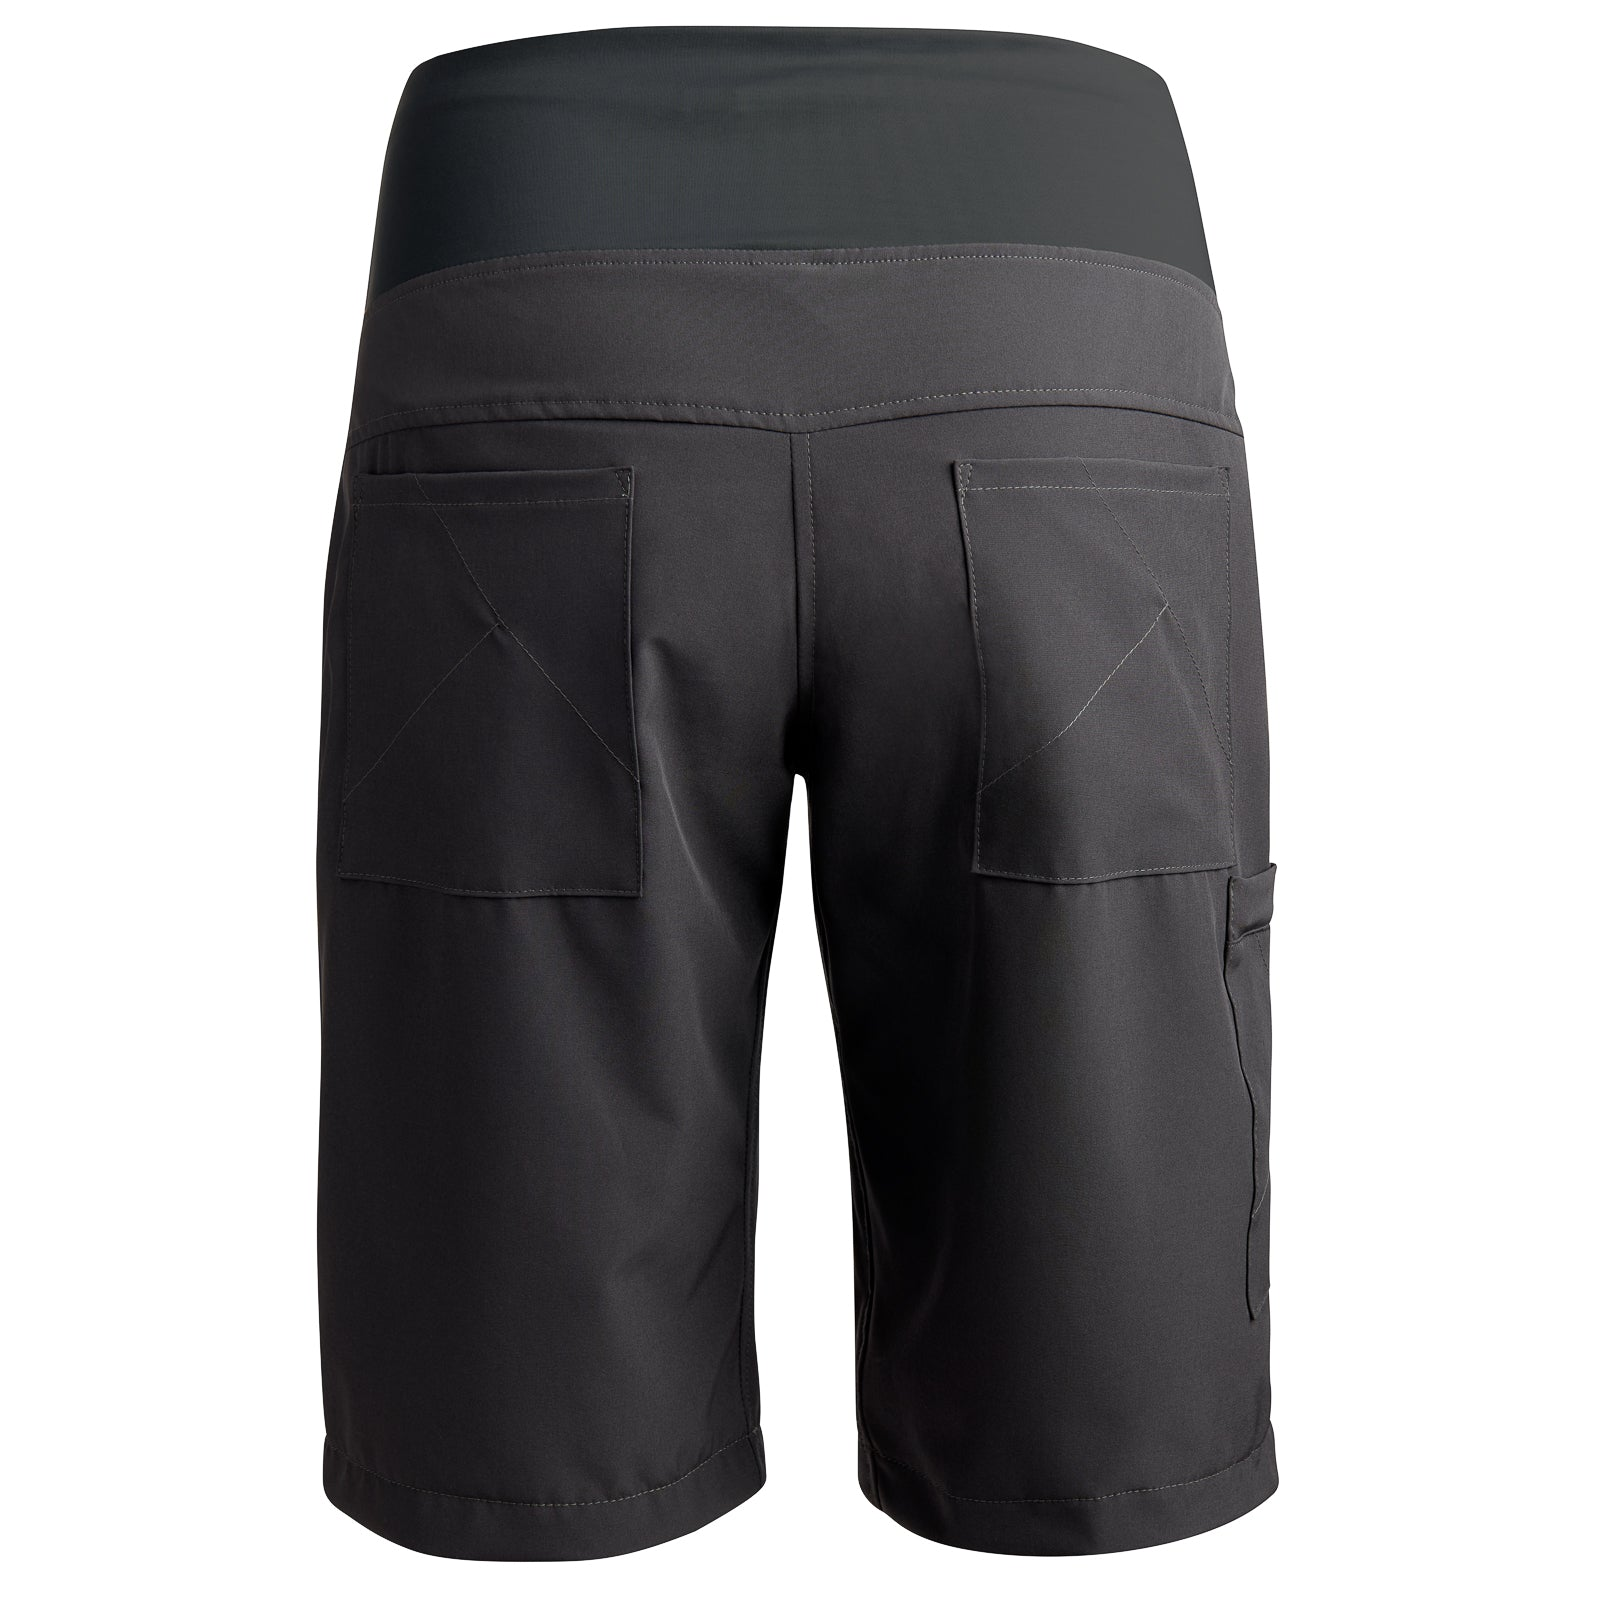 First Line of Mountain Bike Shorts Unveiled From Kaden Apparel - Pinner Short Back